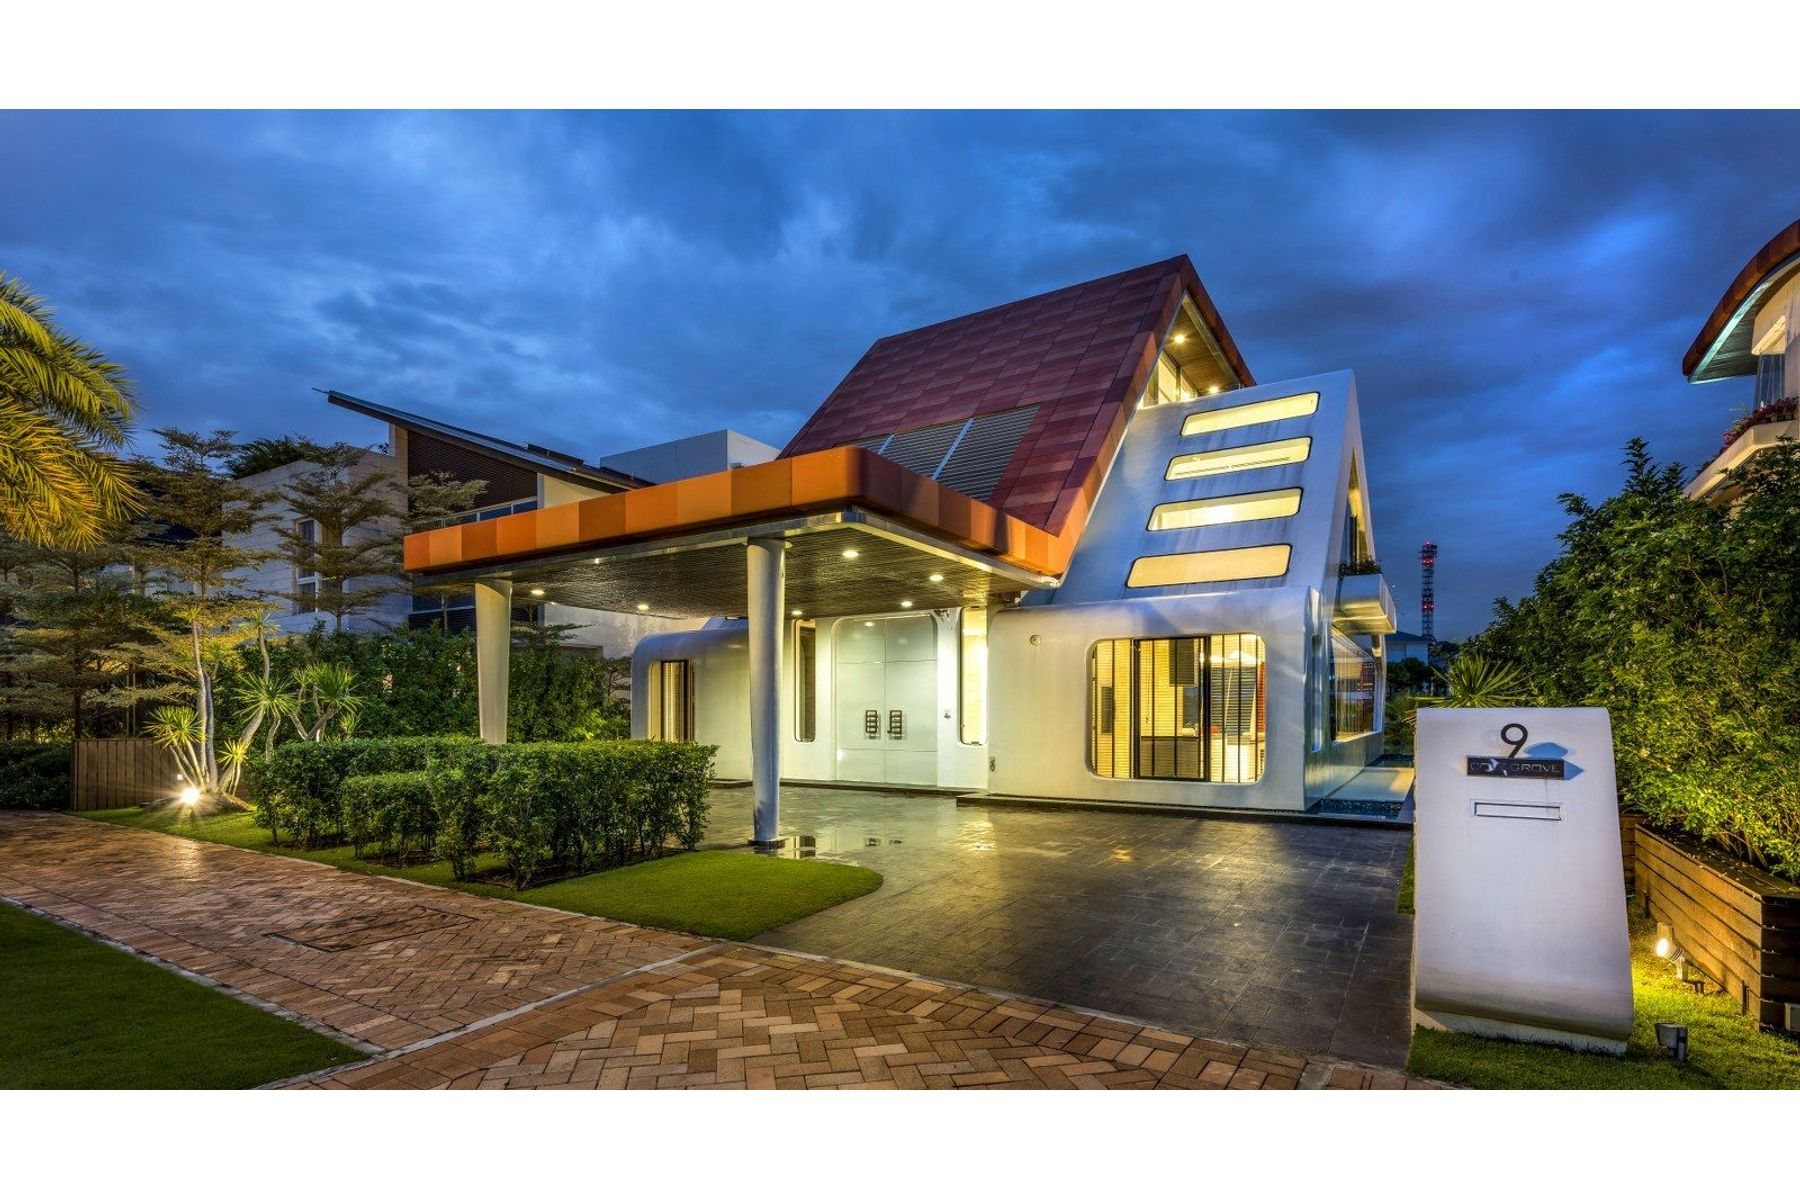 Single Family Home for Sale at Modern Villa Mistral Singapore, Cities In Singapore Singapore